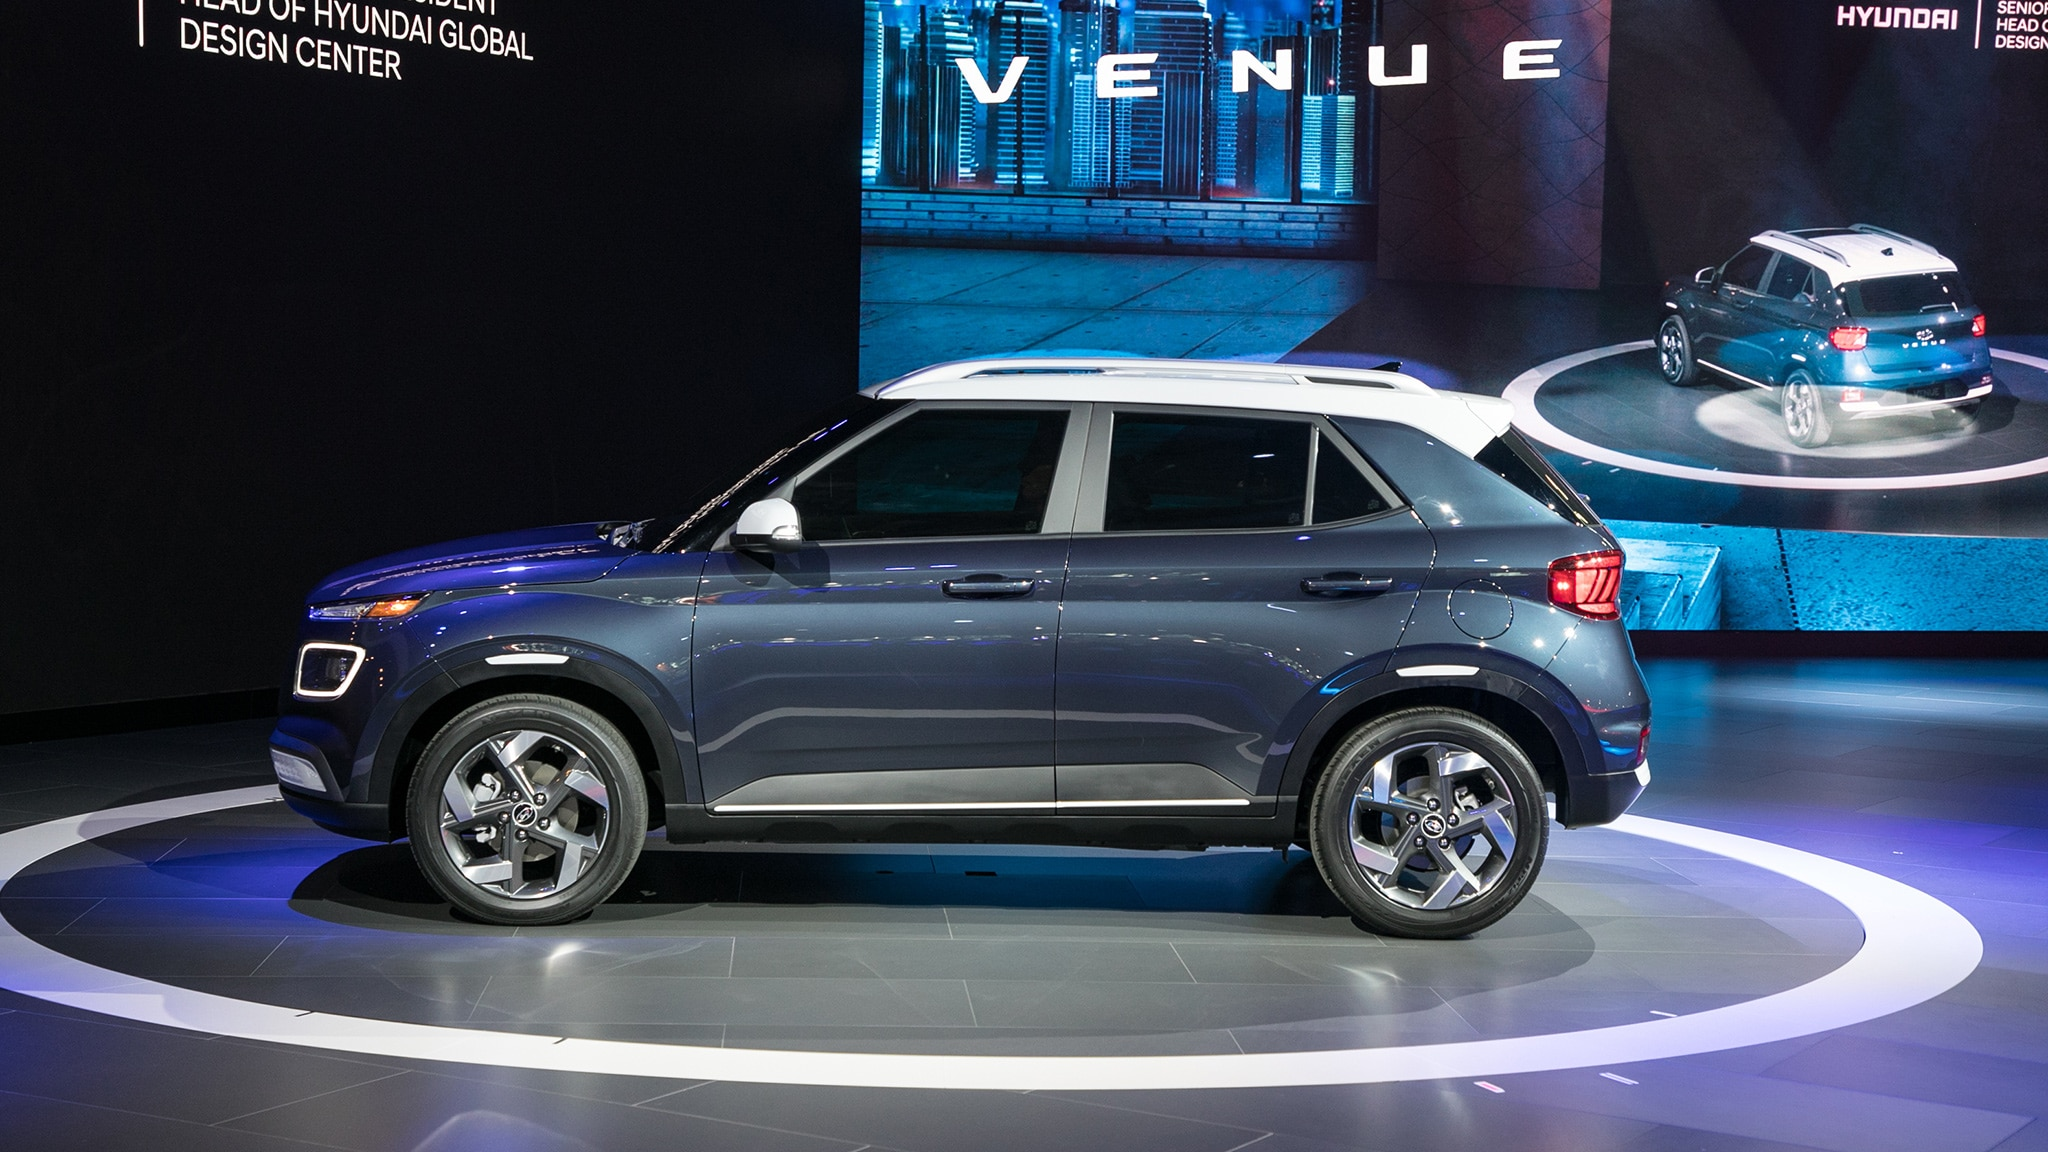 2020 Hyundai Venue A New Entry Level Crossover Suv Automobile